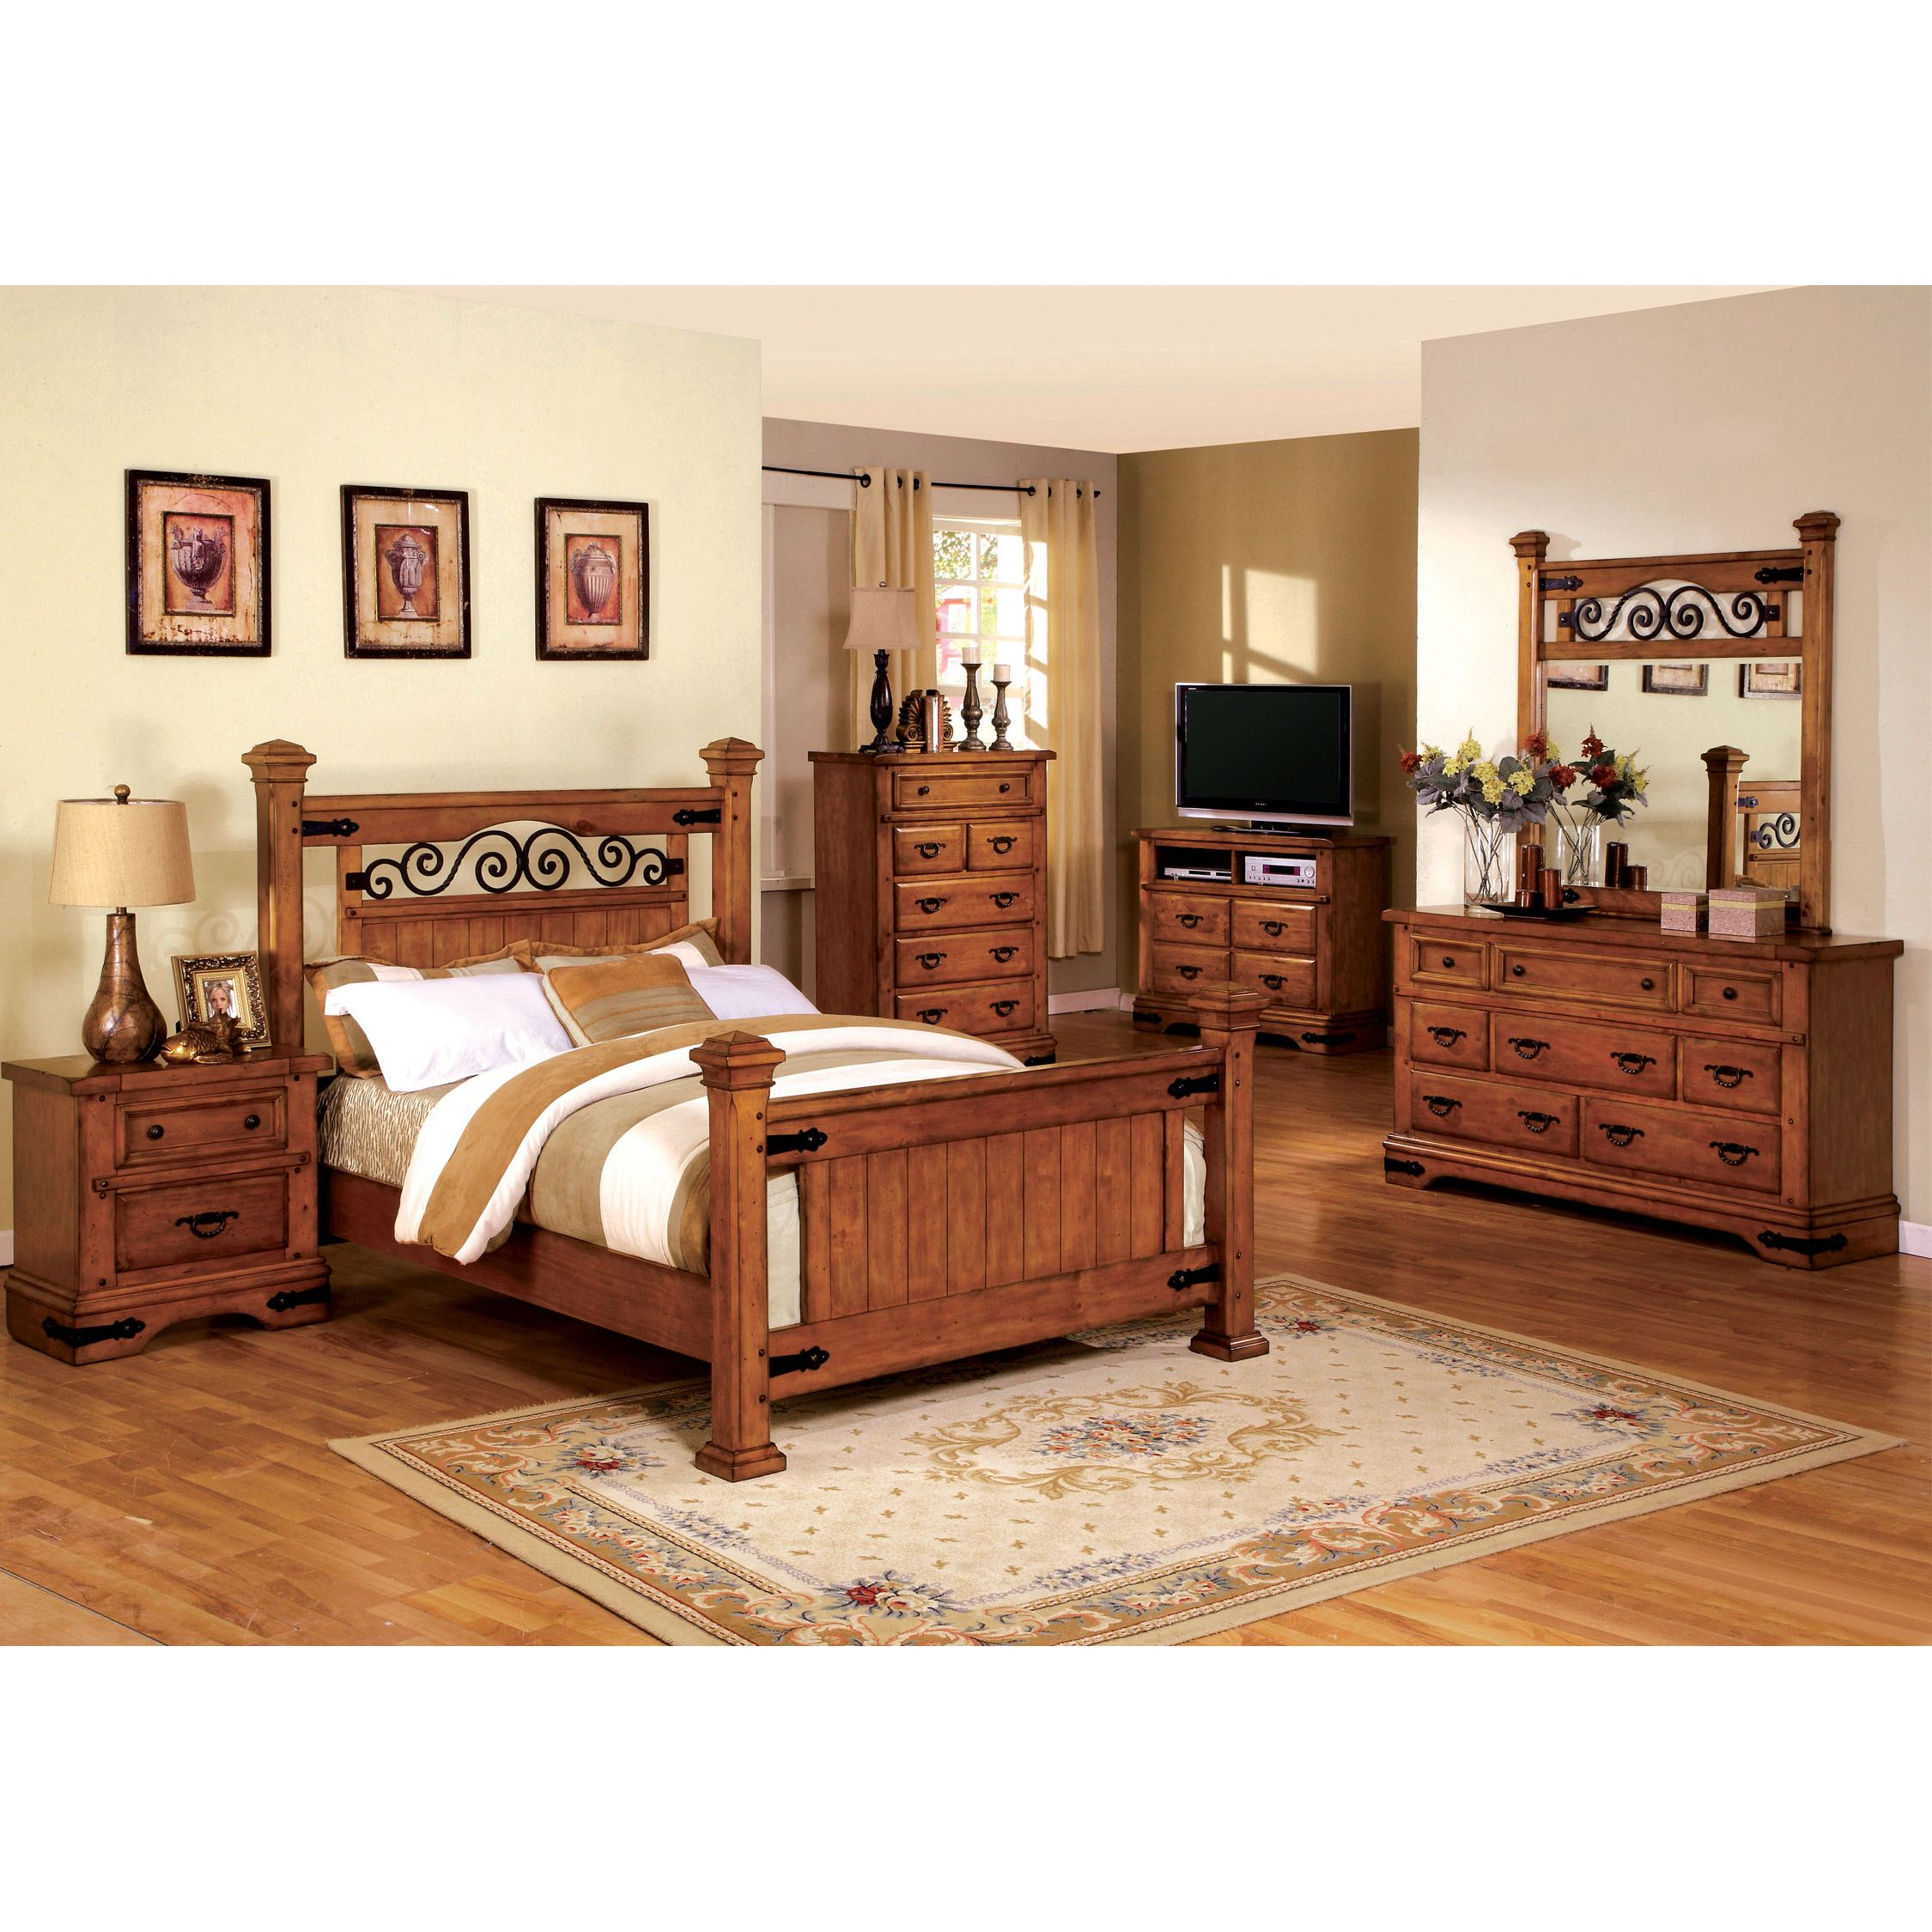 Marlo Furniture Bedroom Sets Furniture Of America 4 Piece Country Style American Oak Bedroom